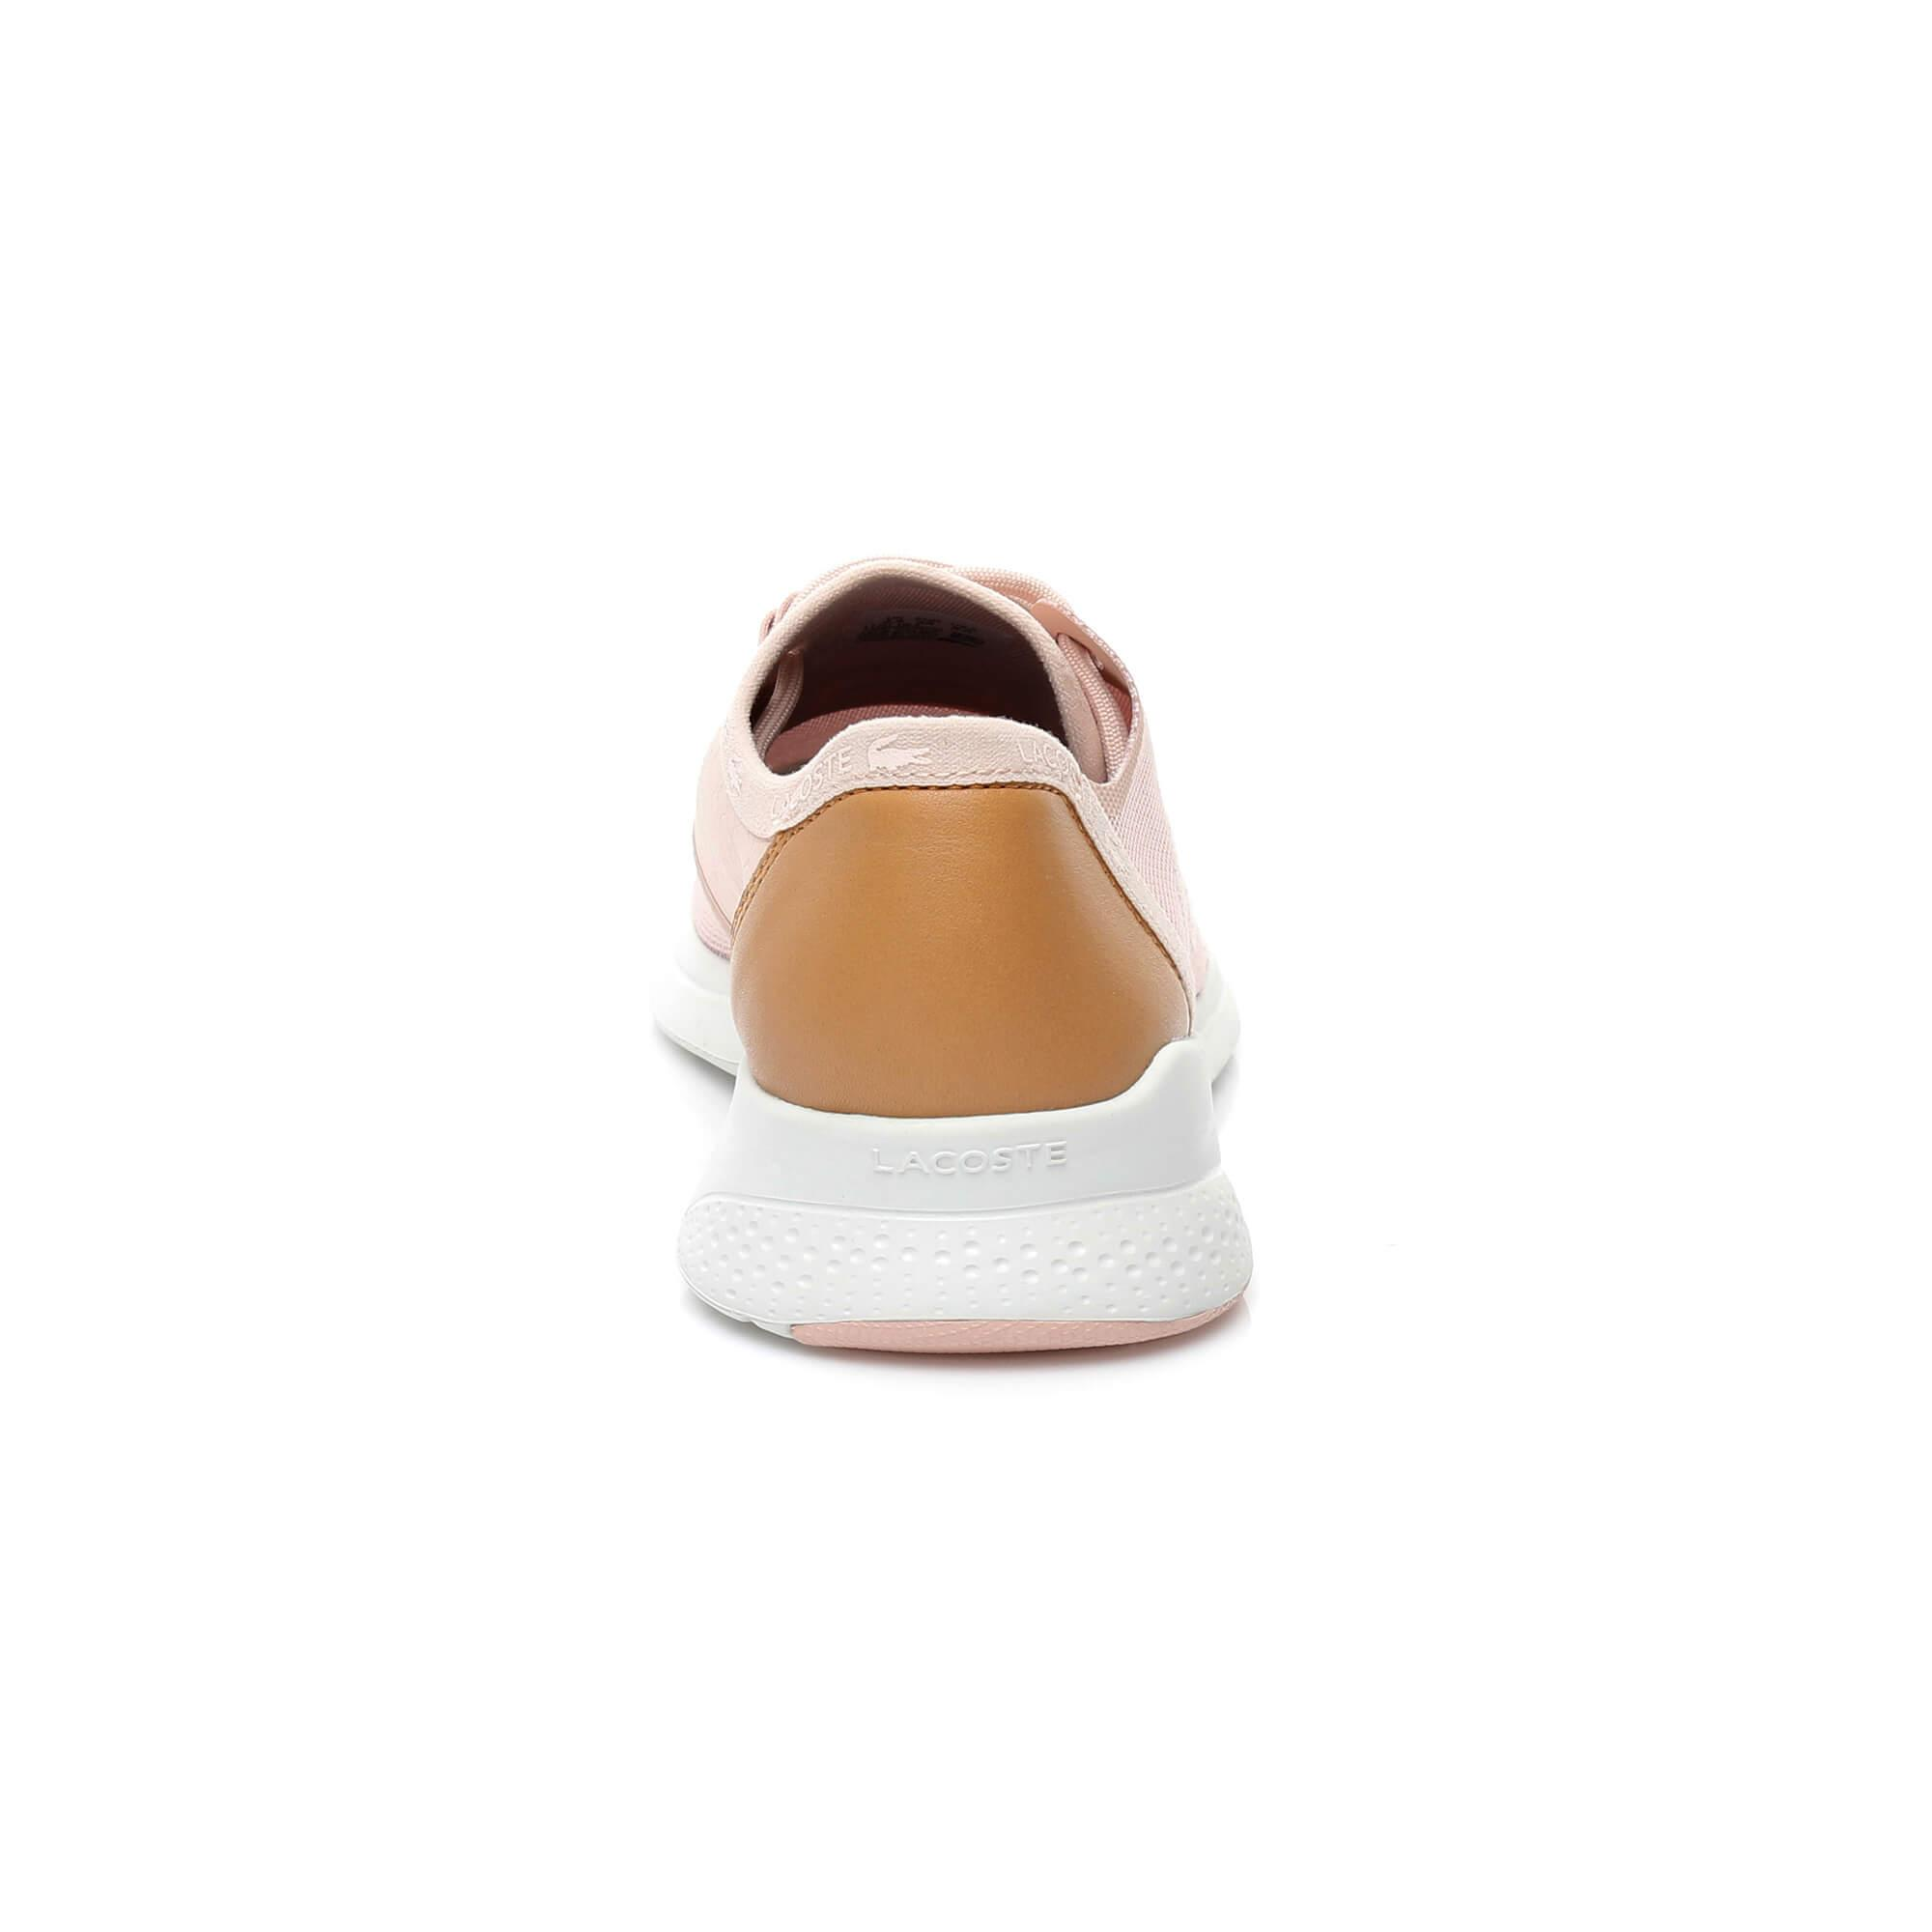 Lacoste Women's Lt Fit Sneakers